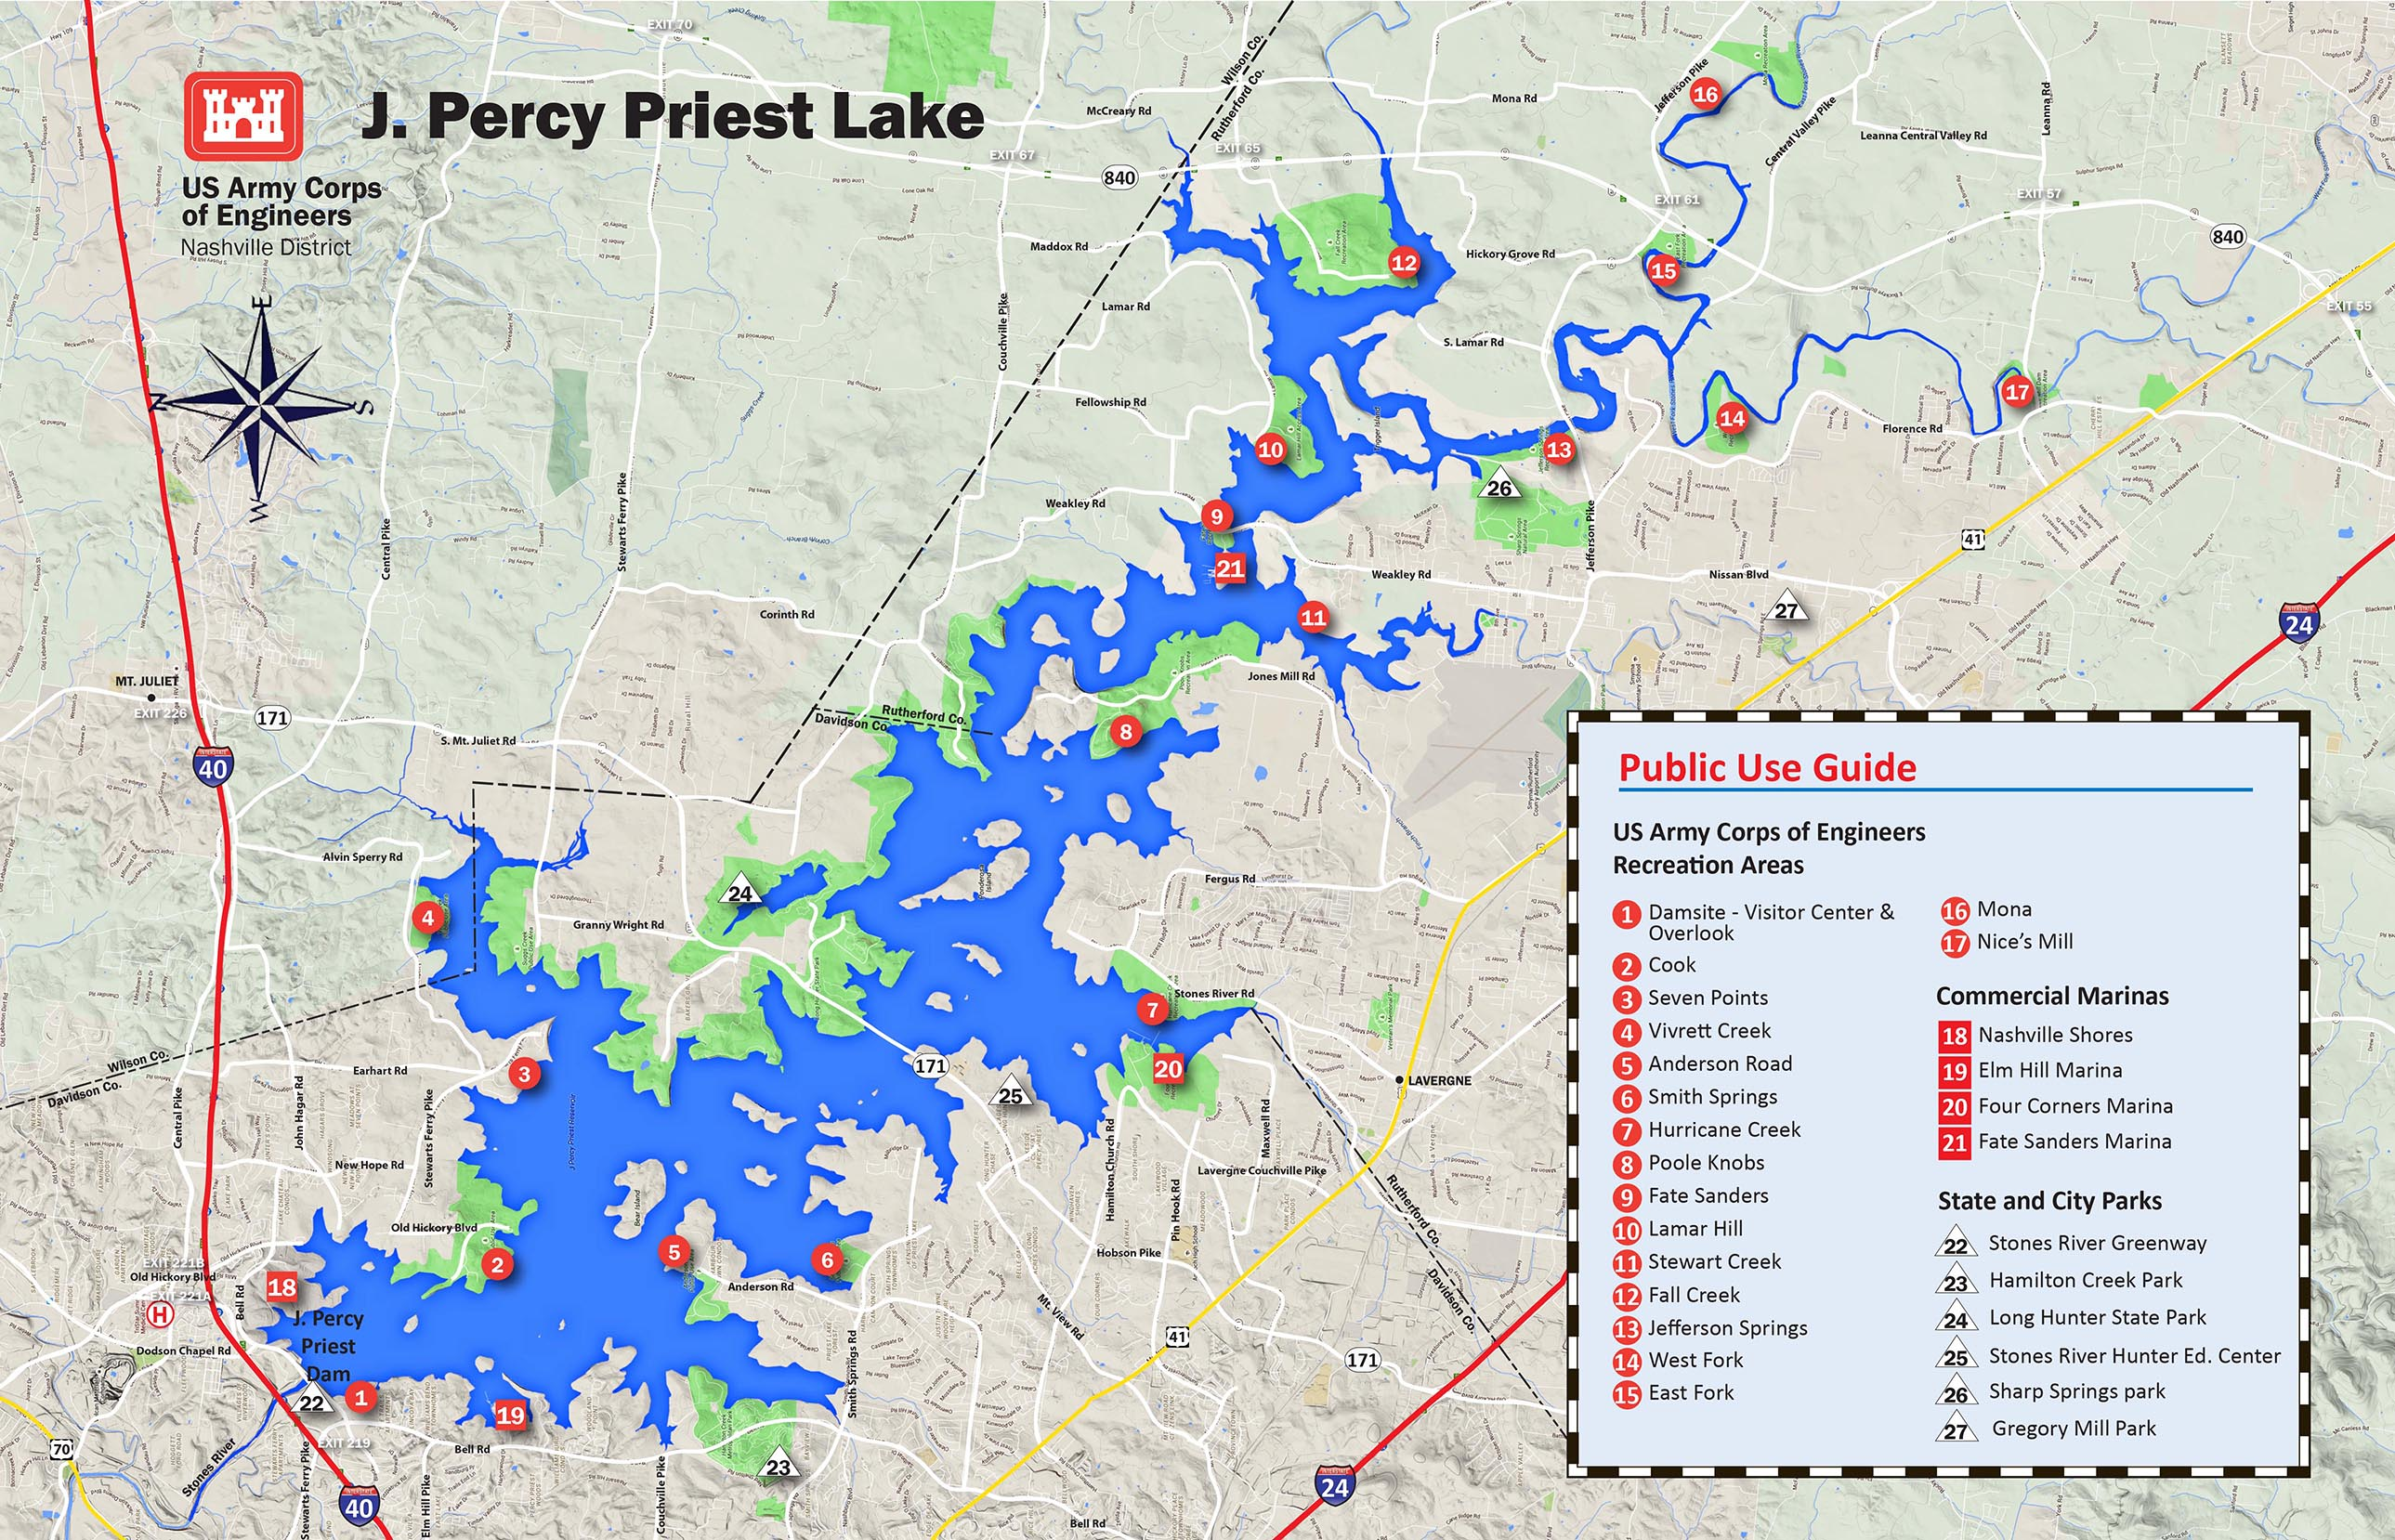 Nashville District > Locations > Lakes > J. Percy Priest Lake > Maps